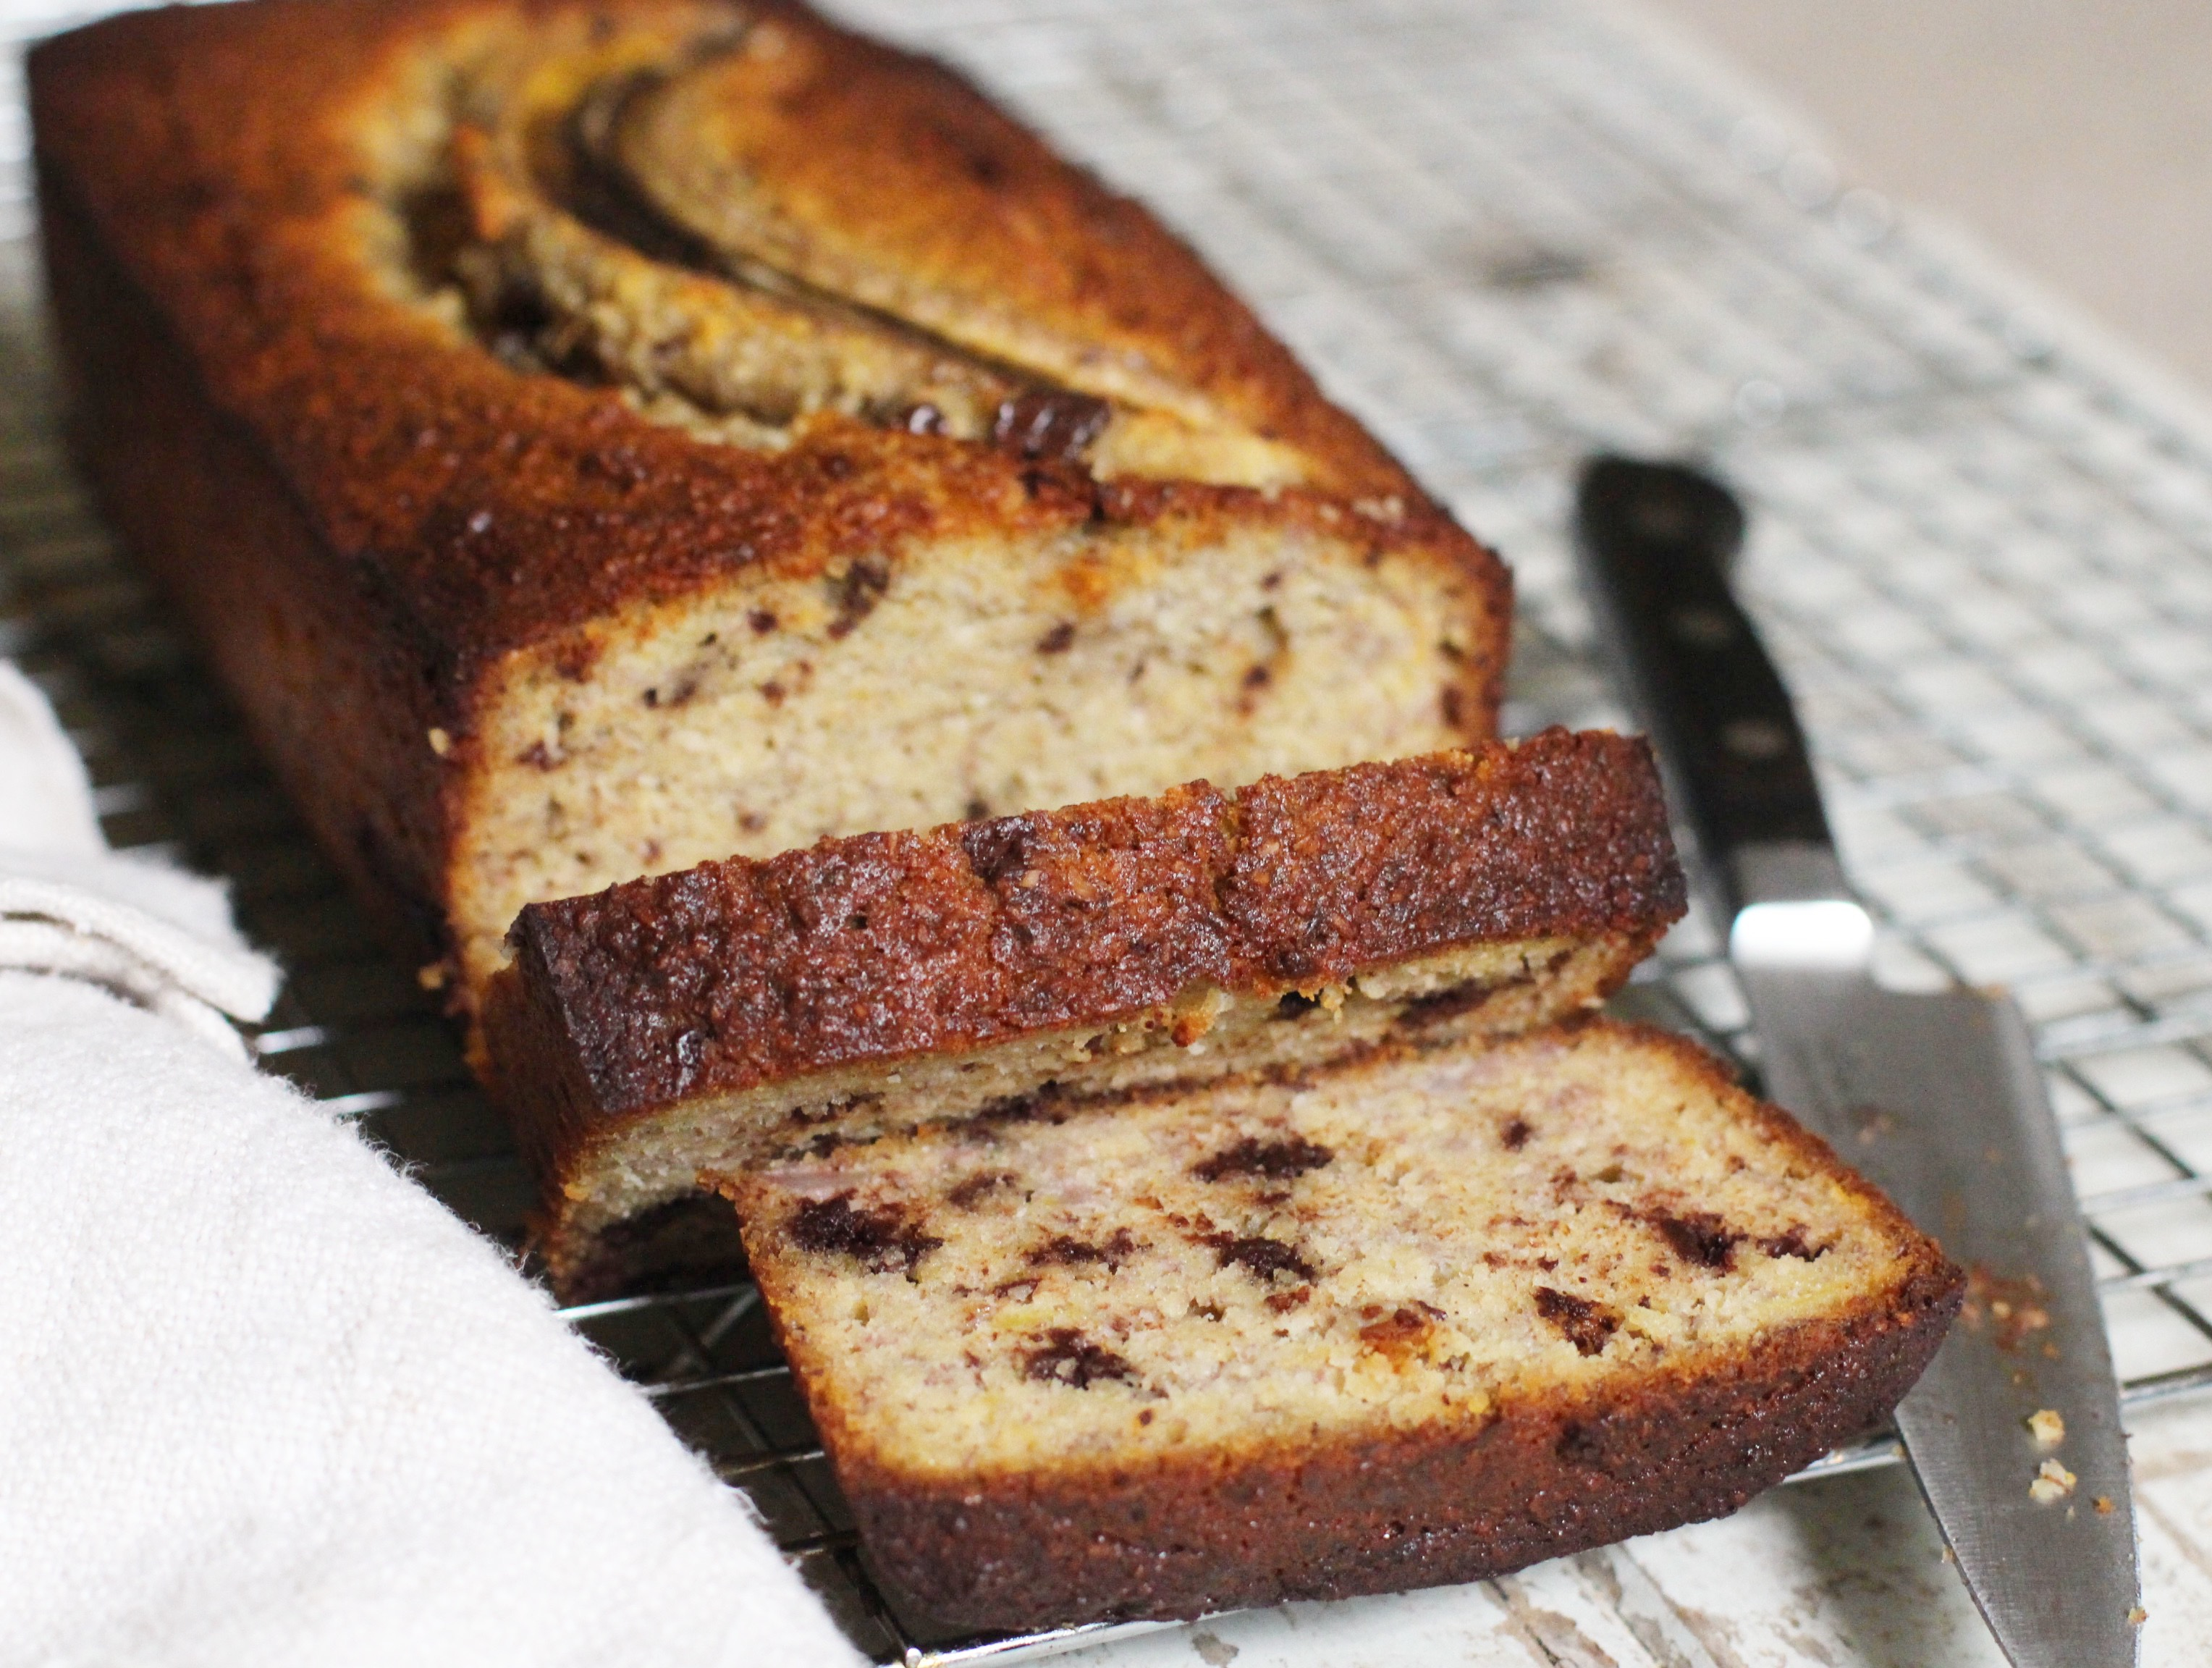 Chocolate chip banana bread the little green spoon chocolate chip banana bread forumfinder Gallery